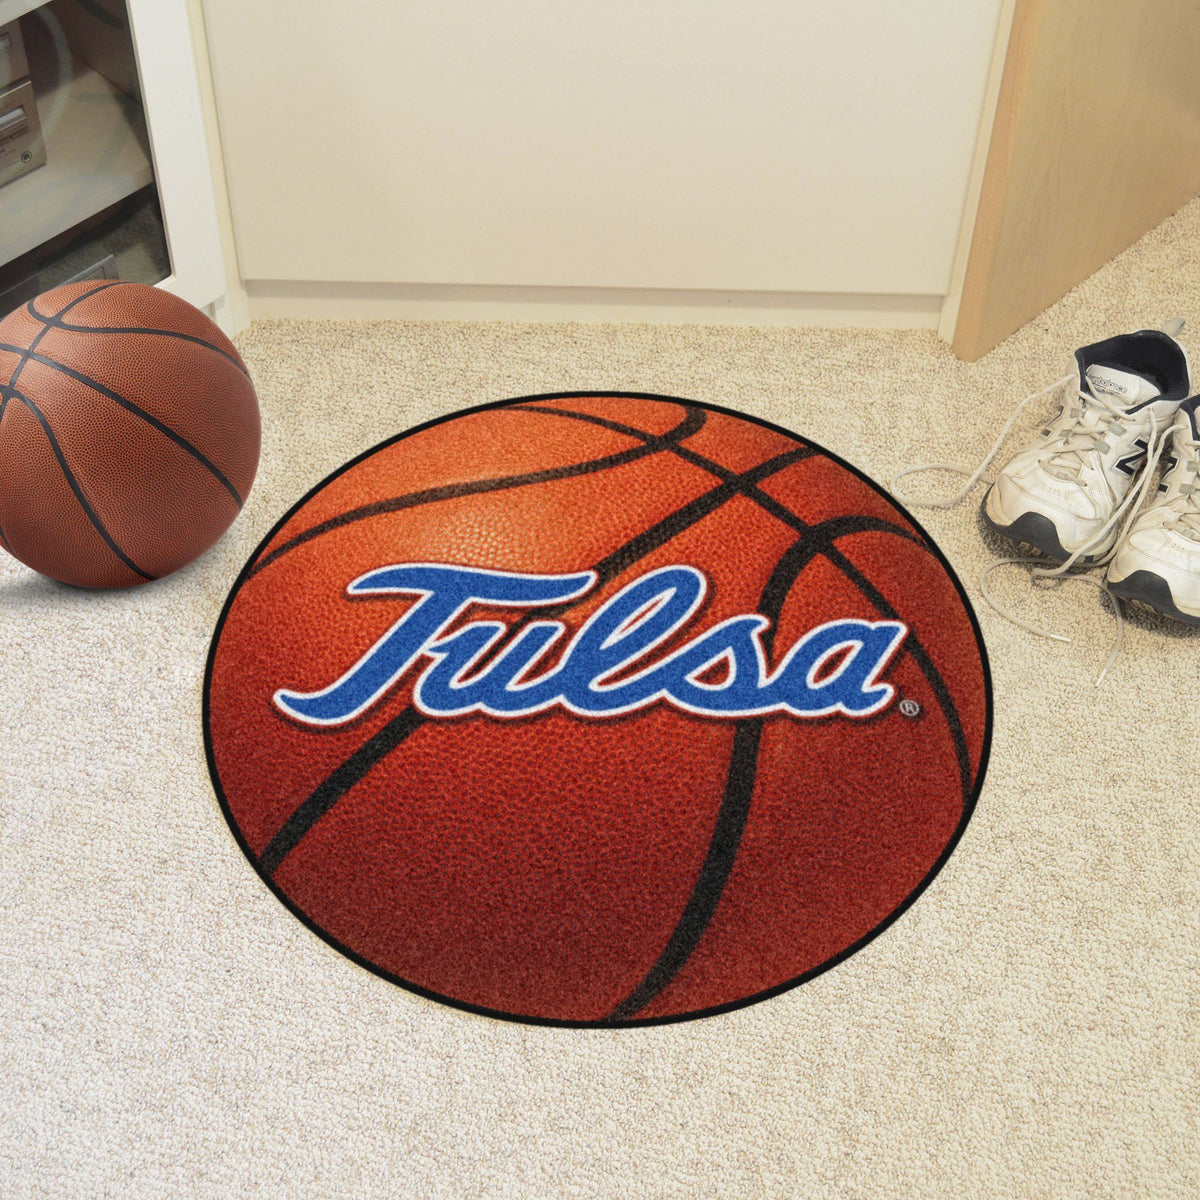 Collegiate - Basketball Mat: T - Z Collegiate Mats, Rectangular Mats, Basketball Mat, Collegiate, Home Fan Mats Tulsa